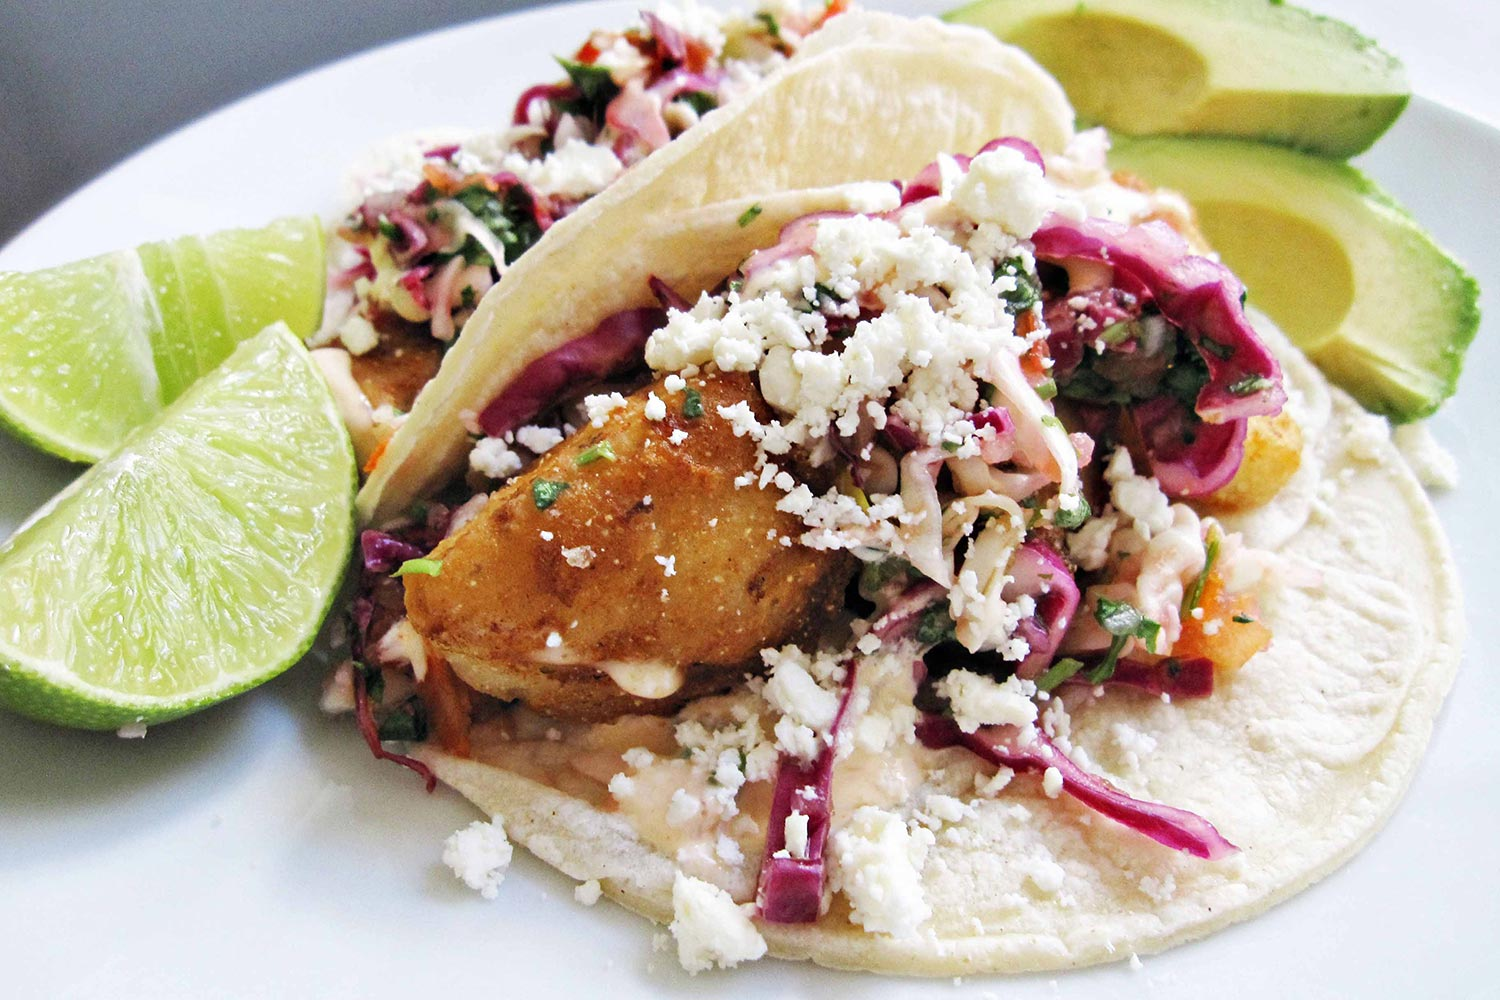 Best baja fish tacos recipe mexican tacos with fish sauce for Best fish for fish tacos